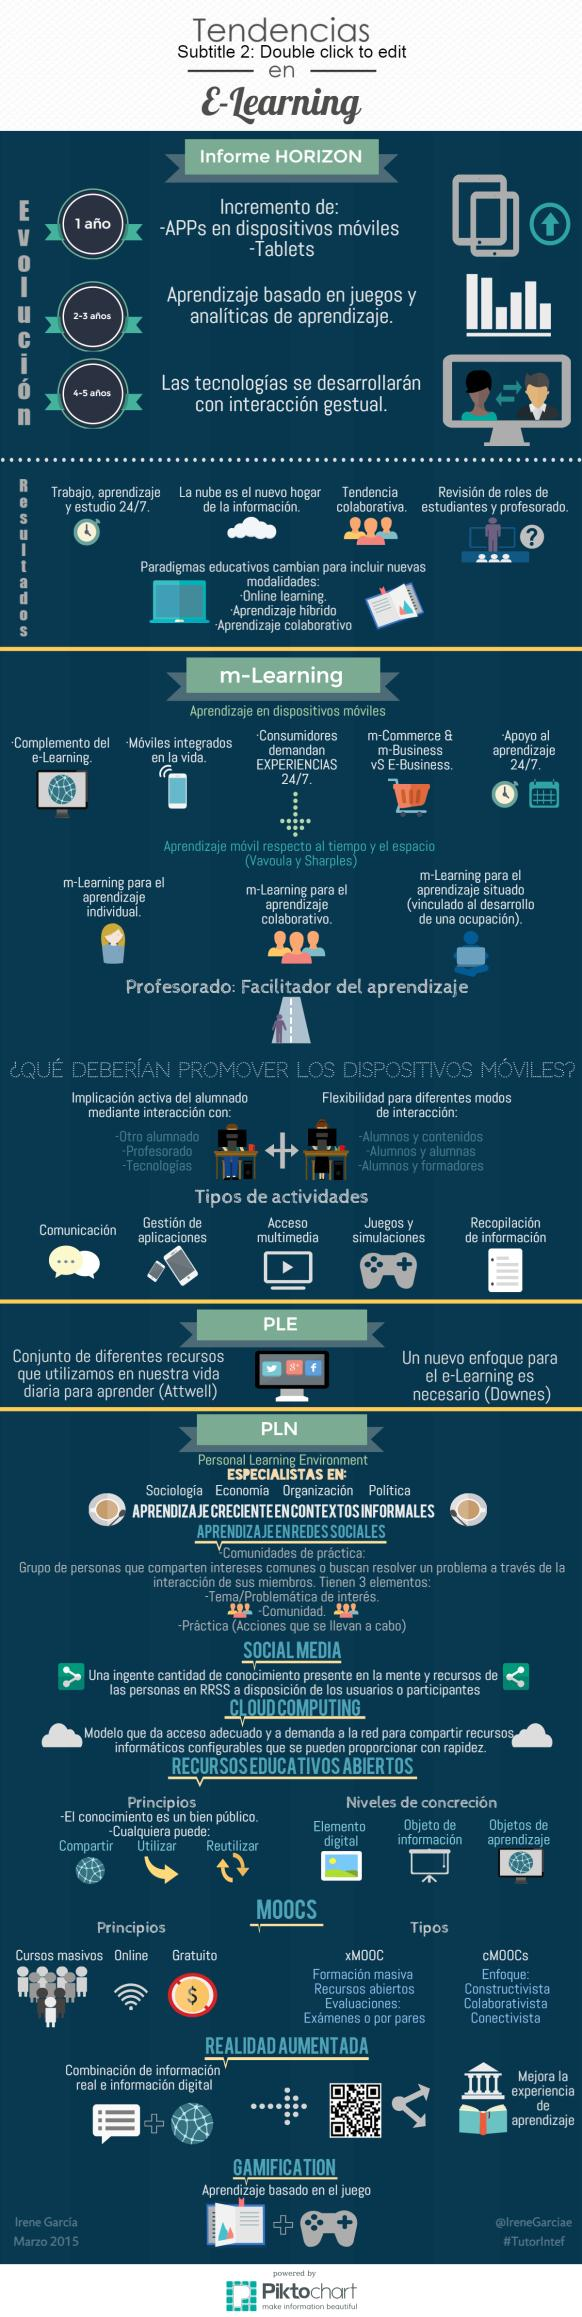 Tendencias en eLearning